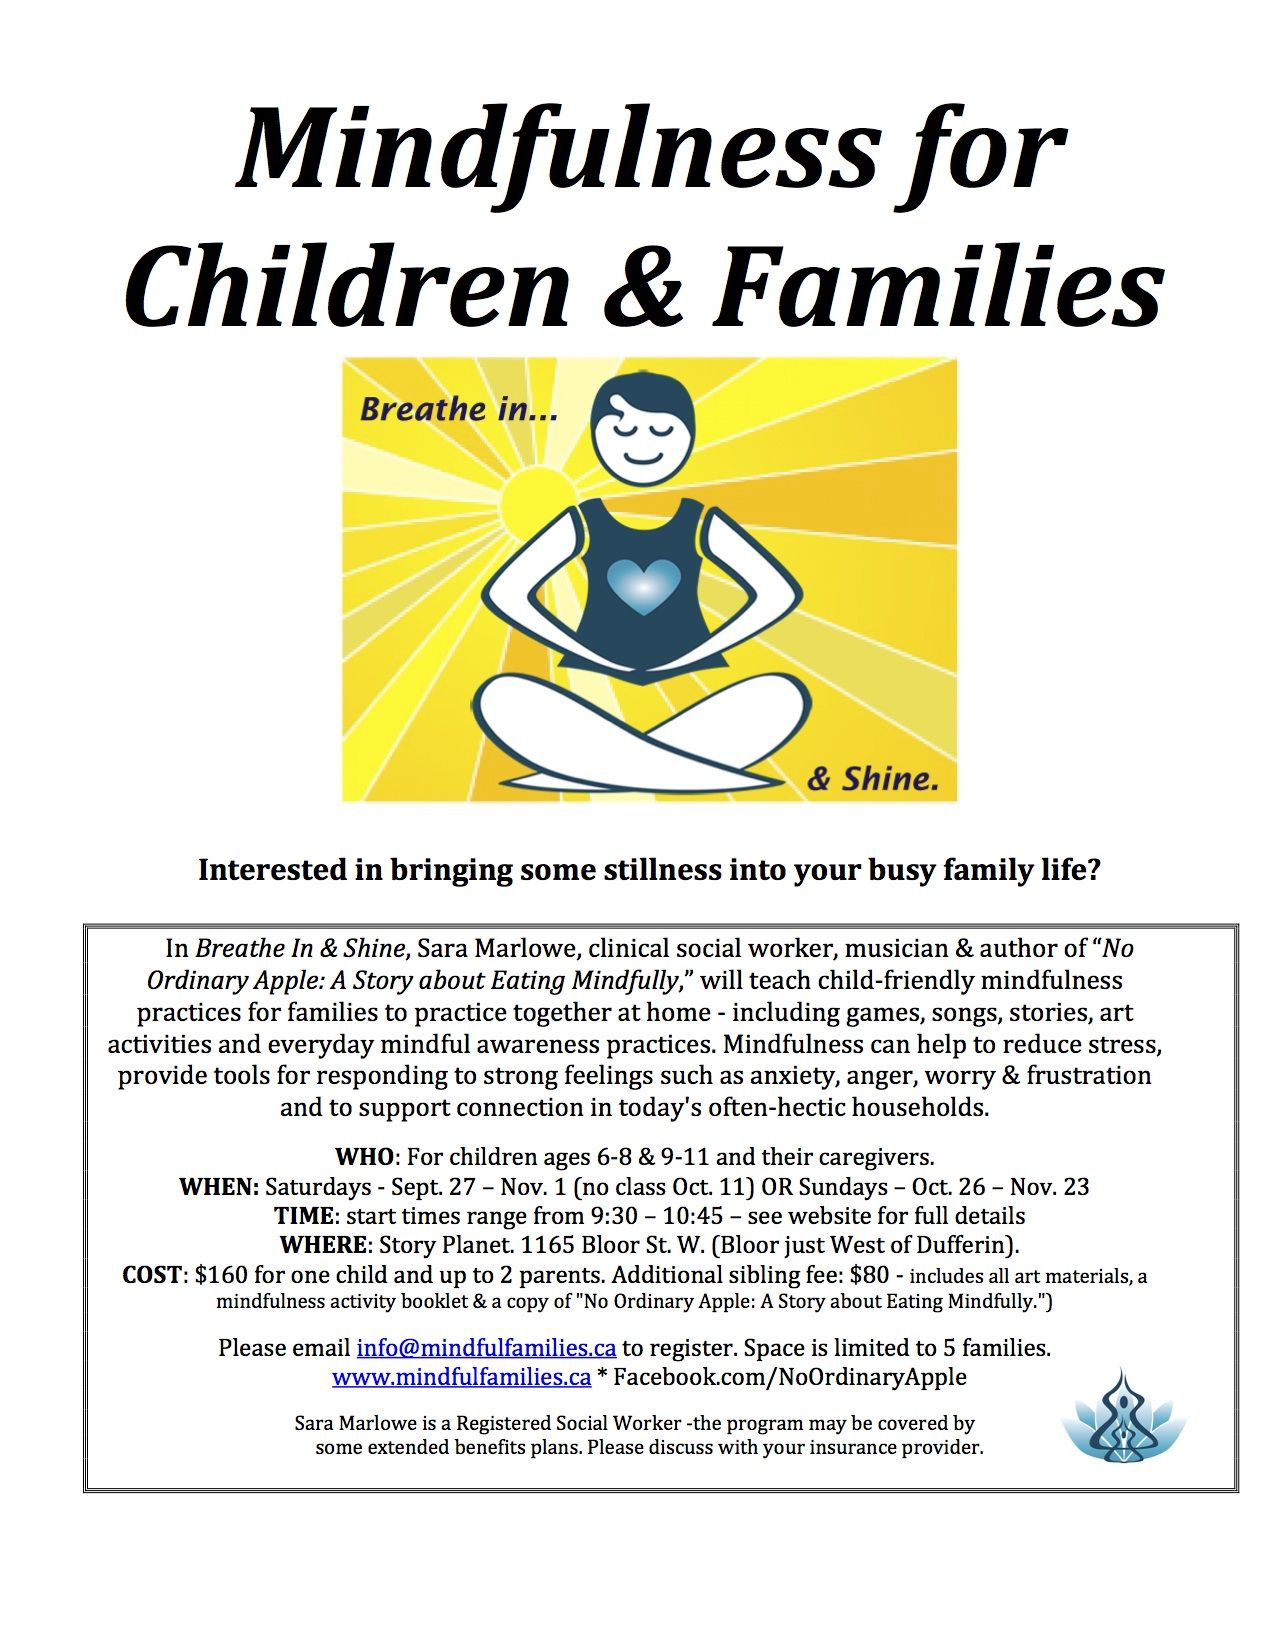 Breathe In & Shine: Mindfulness for Children & Families. Fall programs.